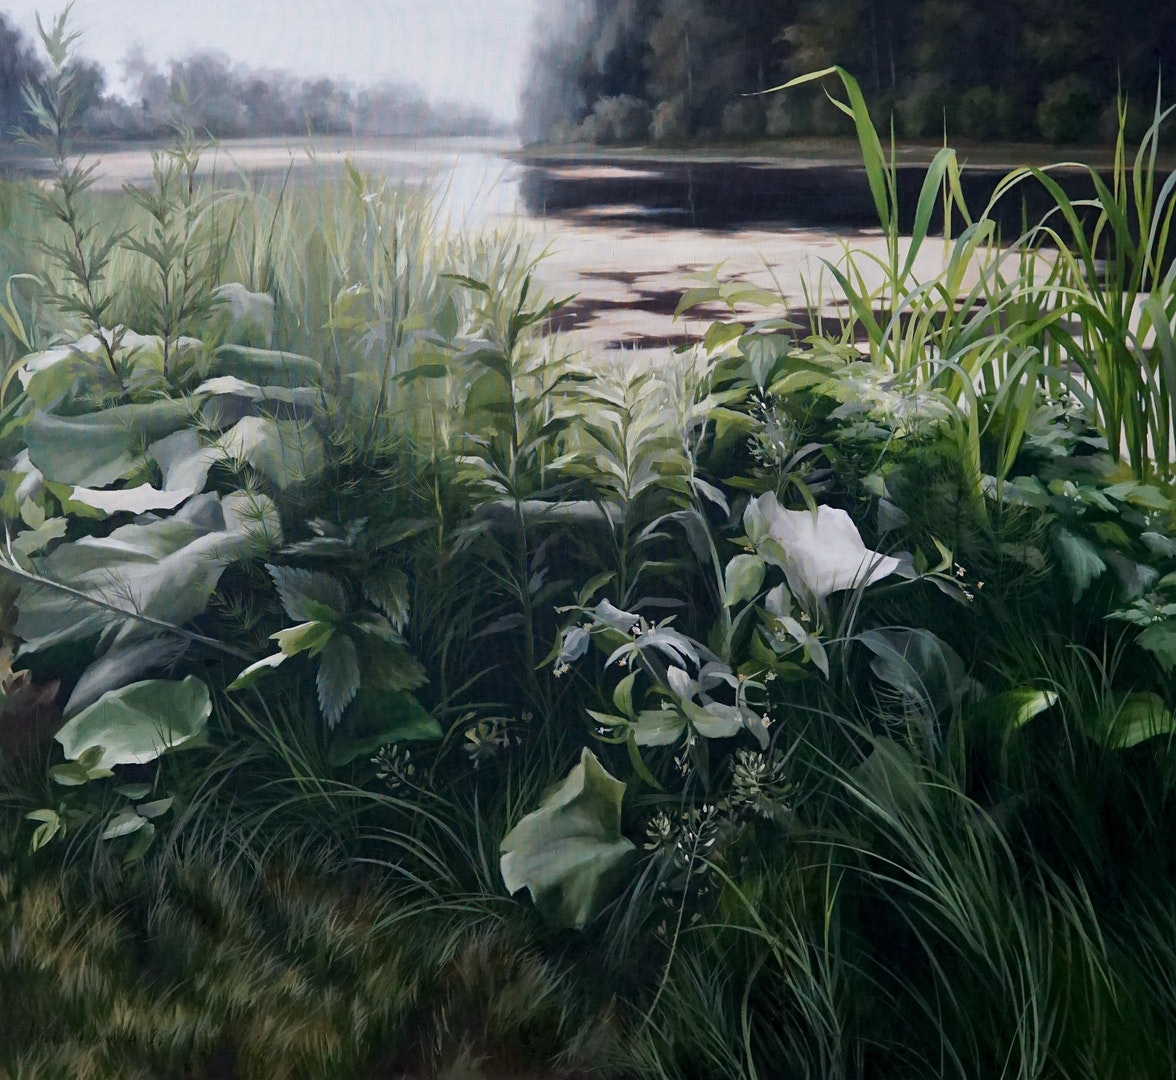 My invisible, dramatic everyday life', Ieva Kampe-Krumholca, Oil on linen, 100 x 110 cm